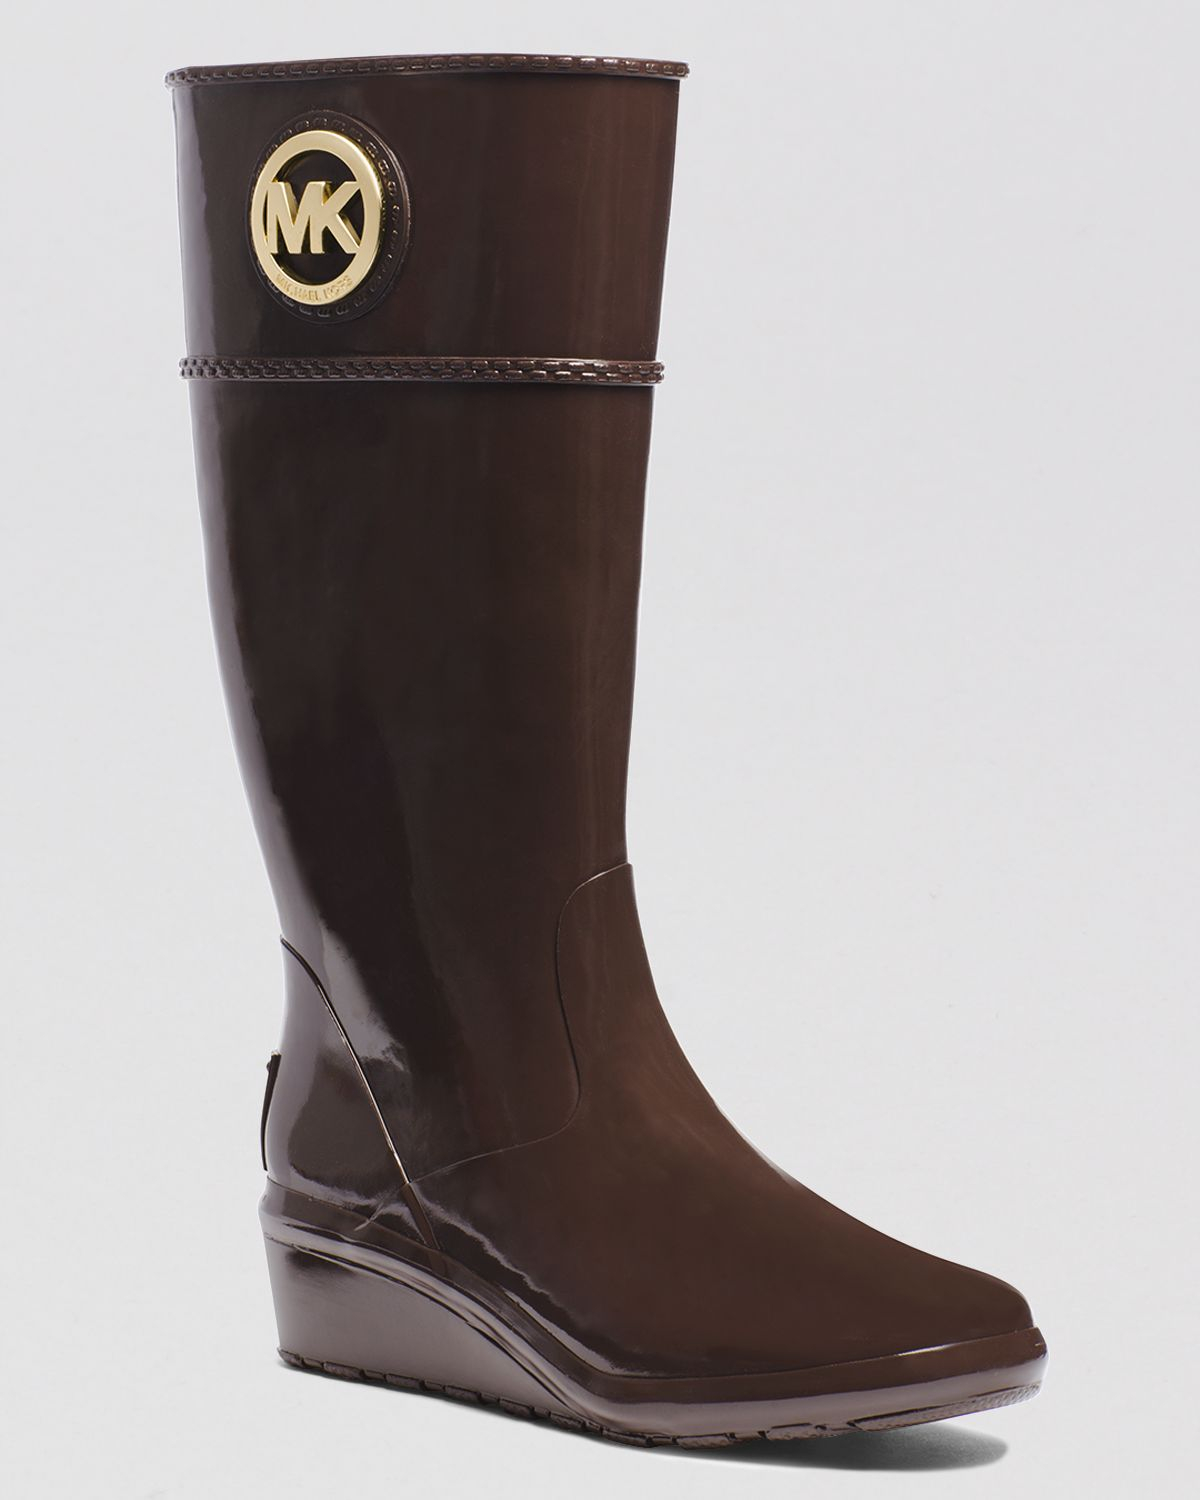 Michael Michael Kors Wedge Rain Boots - Stockard In Brown | Lyst